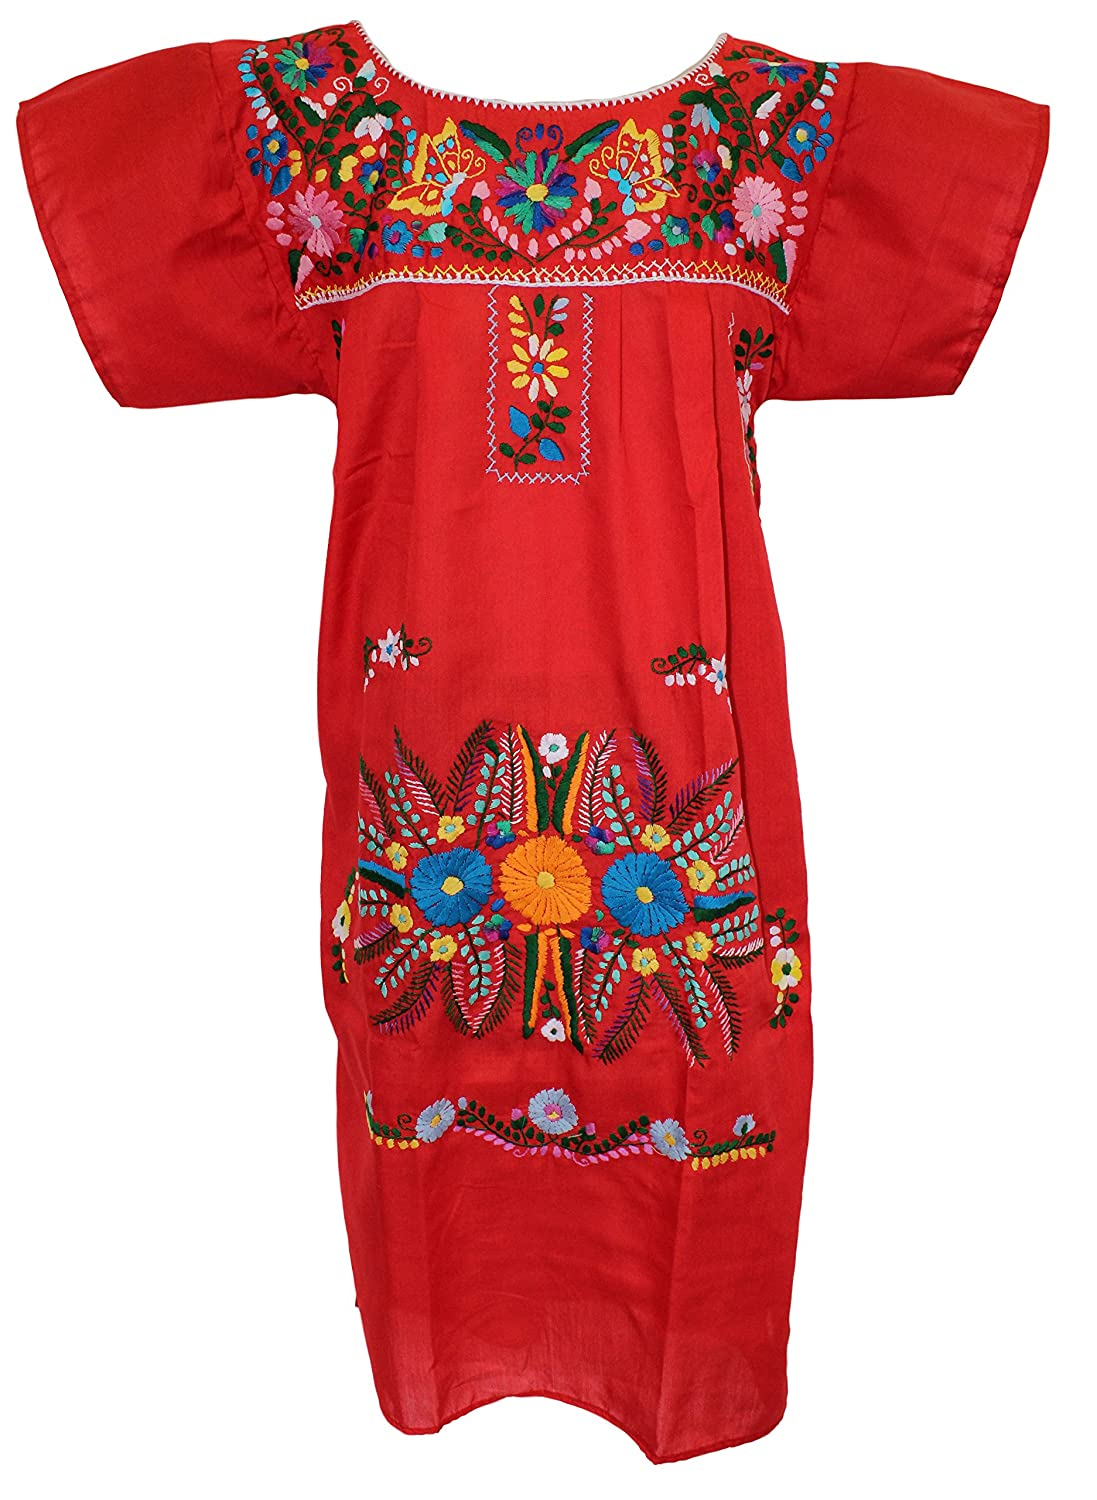 b297d6fa963a23 Women s Puebla Mexican Dress - Red at Amazon Women s Clothing store